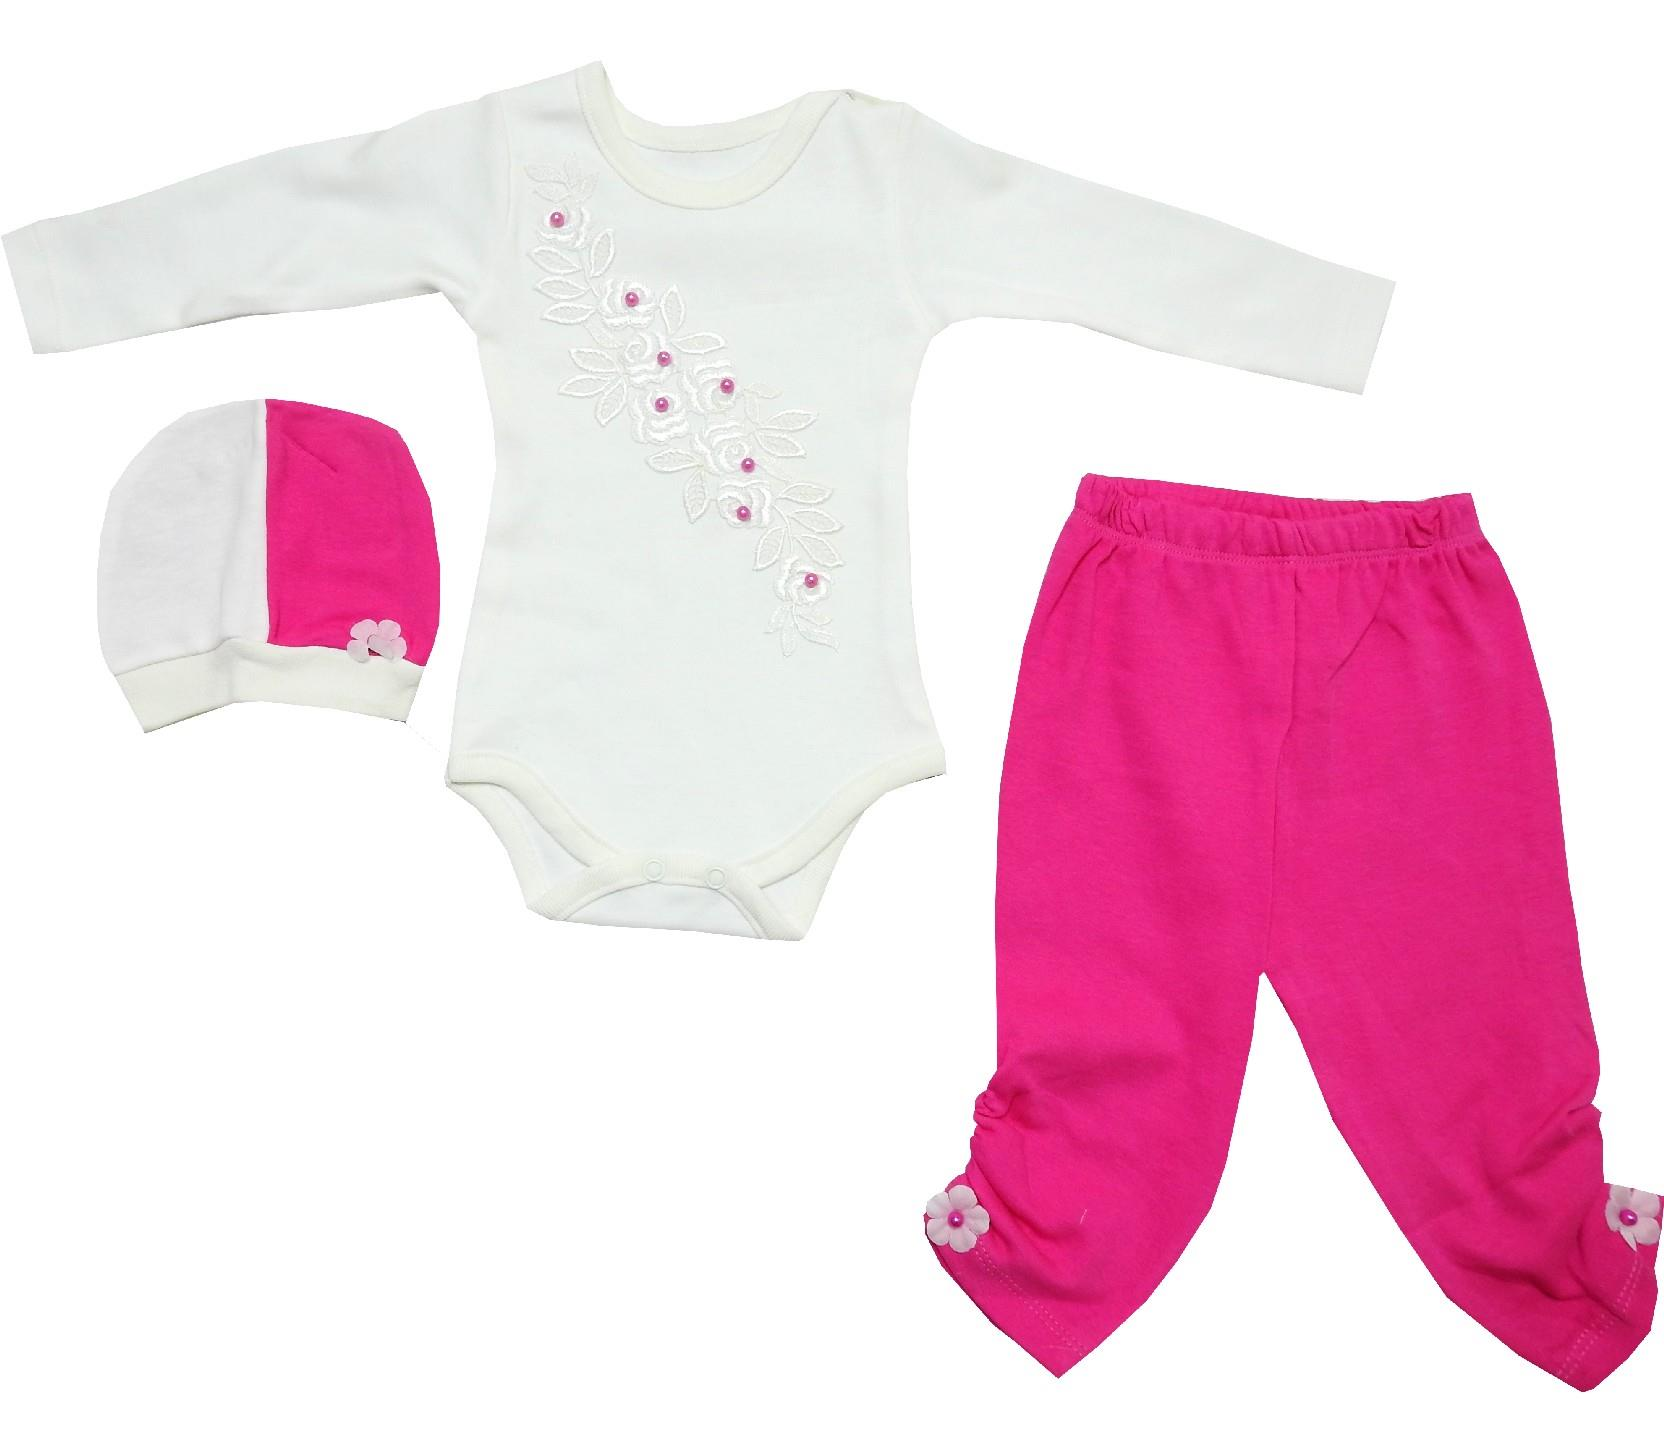 260 wholesale patterned suit for baby (0-3 month)